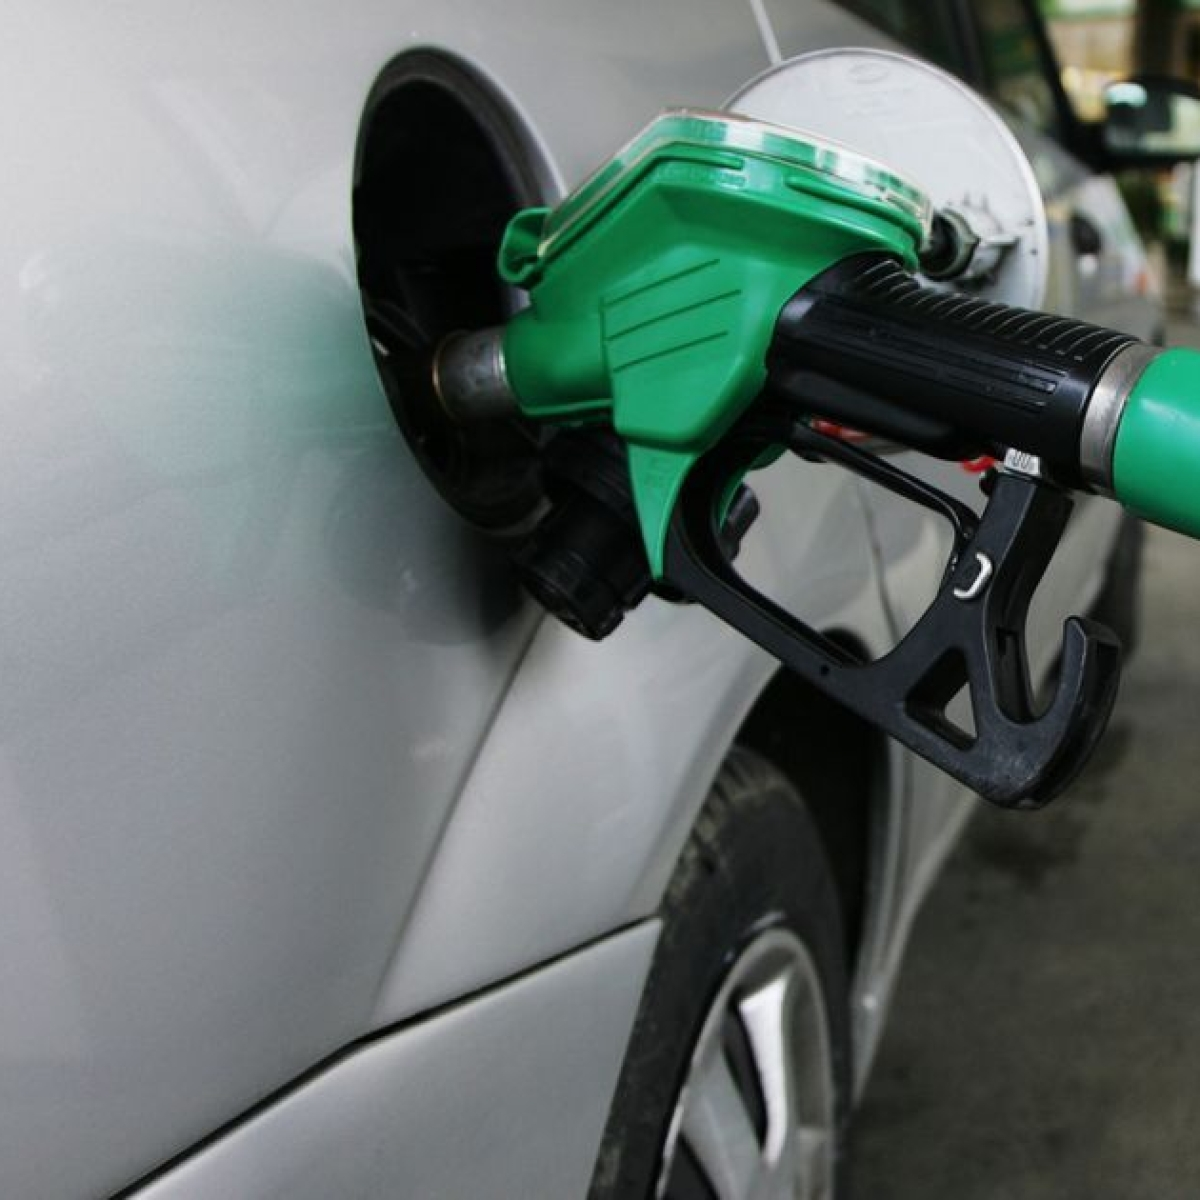 Petrol, diesel prices hiked after two-day pause: Check fuel prices in Mumbai, Delhi, Kolkata and Chennai